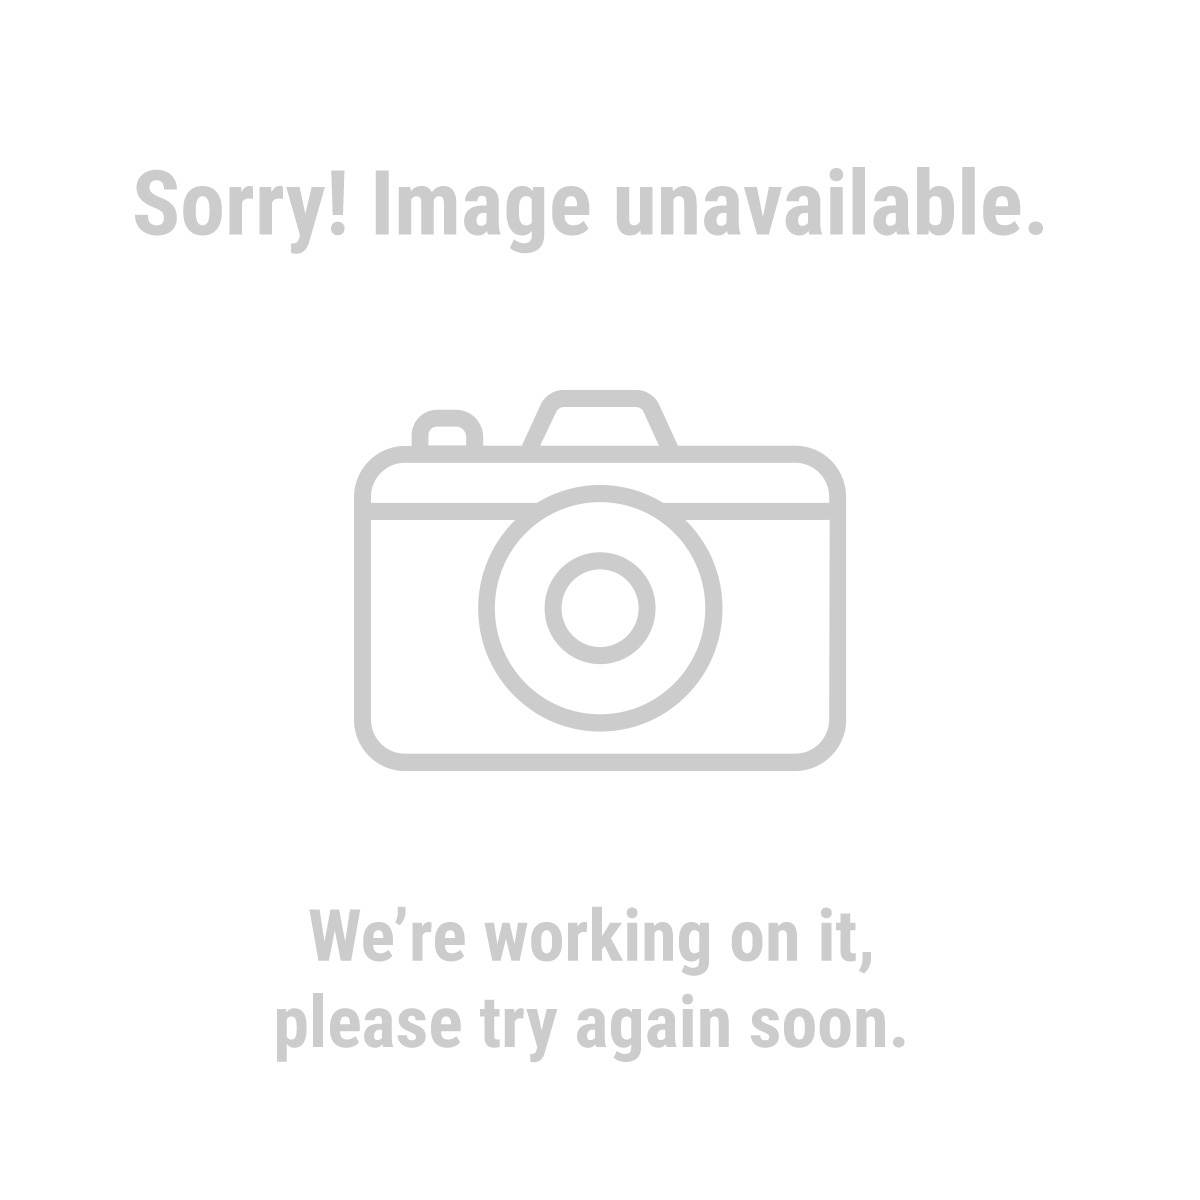 Vanguard 62907 100 ft. x 12 Gauge Multi-Outlet Extension Cord with Indicator Light